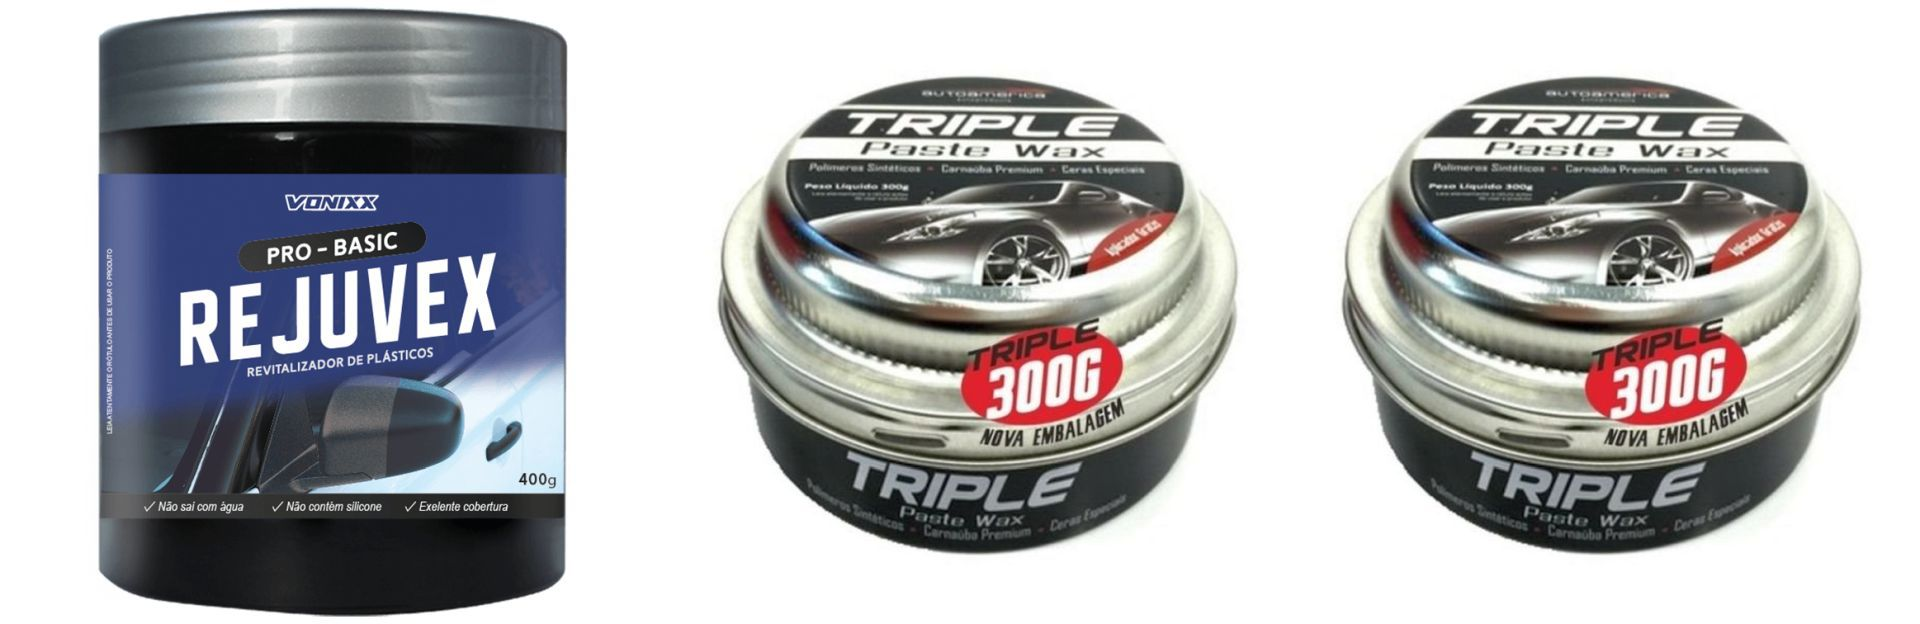 Kit 2 Cera Triple 300g+ 1 Rejuvex 400g